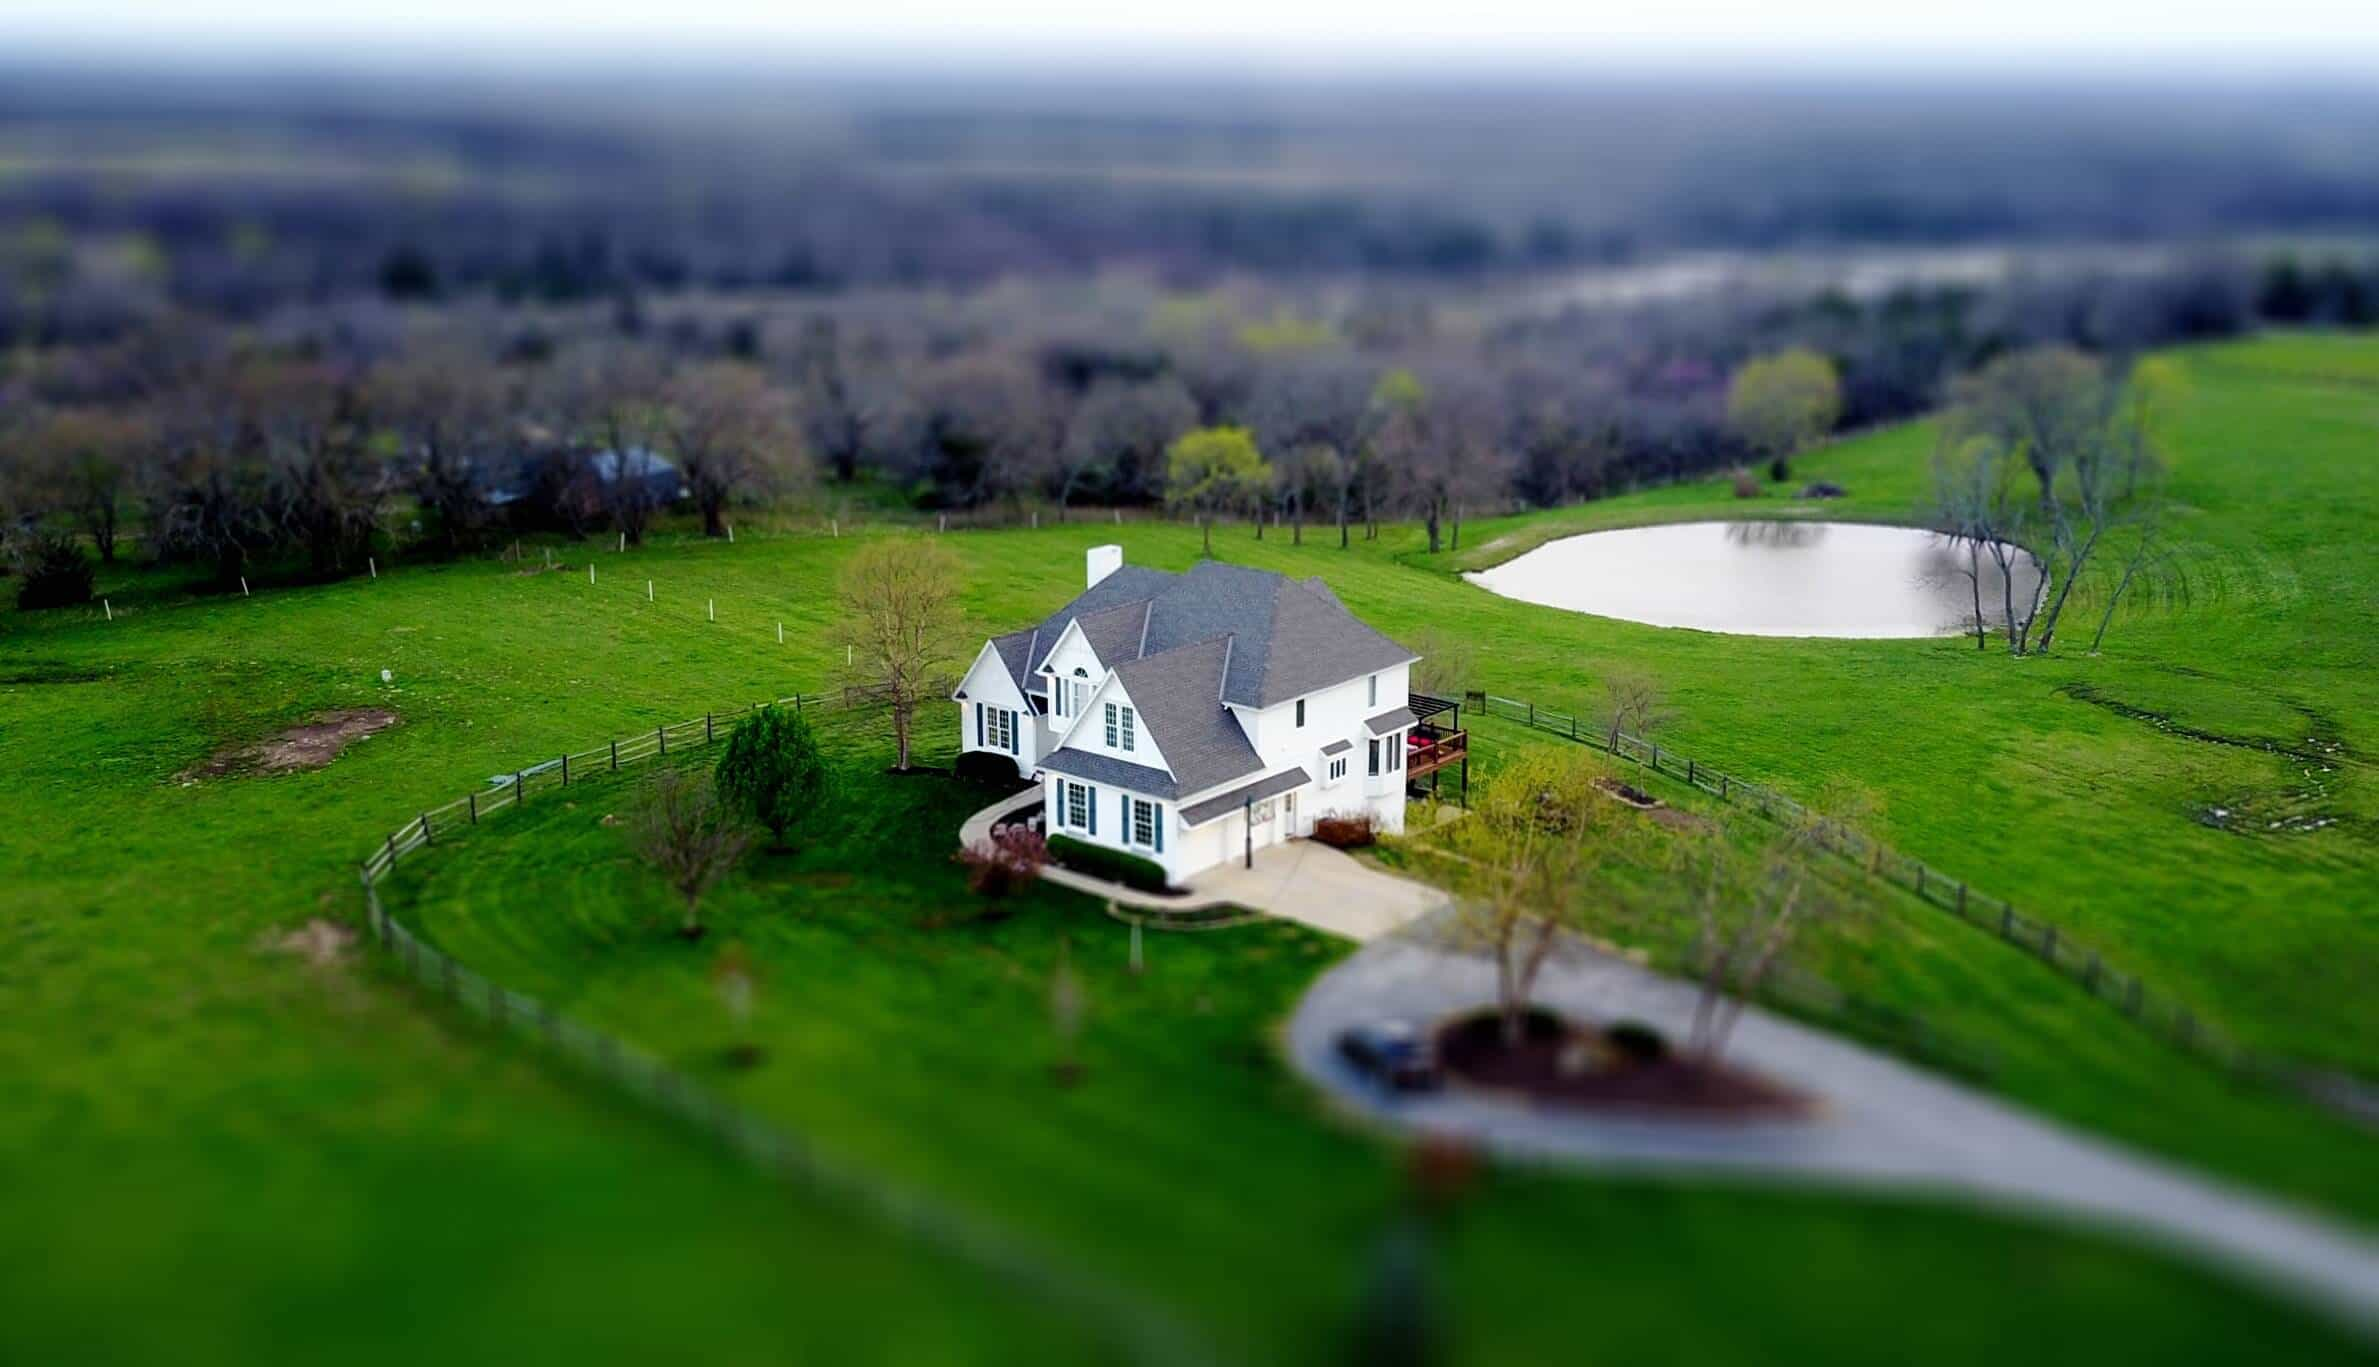 aerial shot of a house